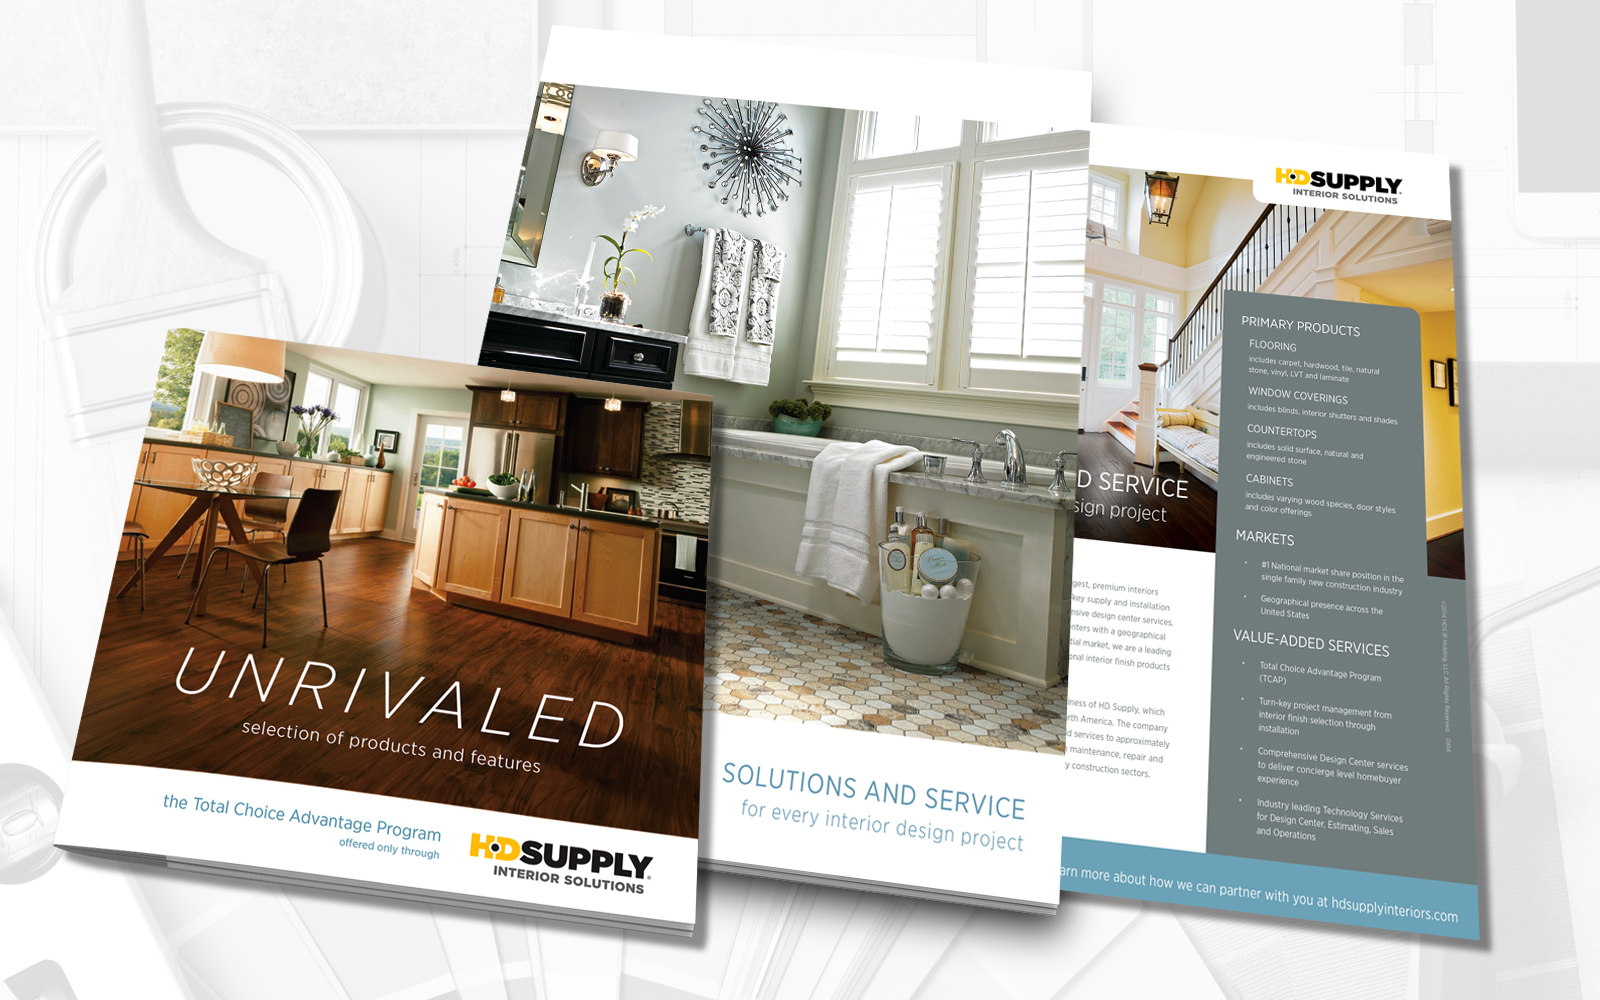 INTERIOR DESIGN BUSINESS, New Marketing Collateral